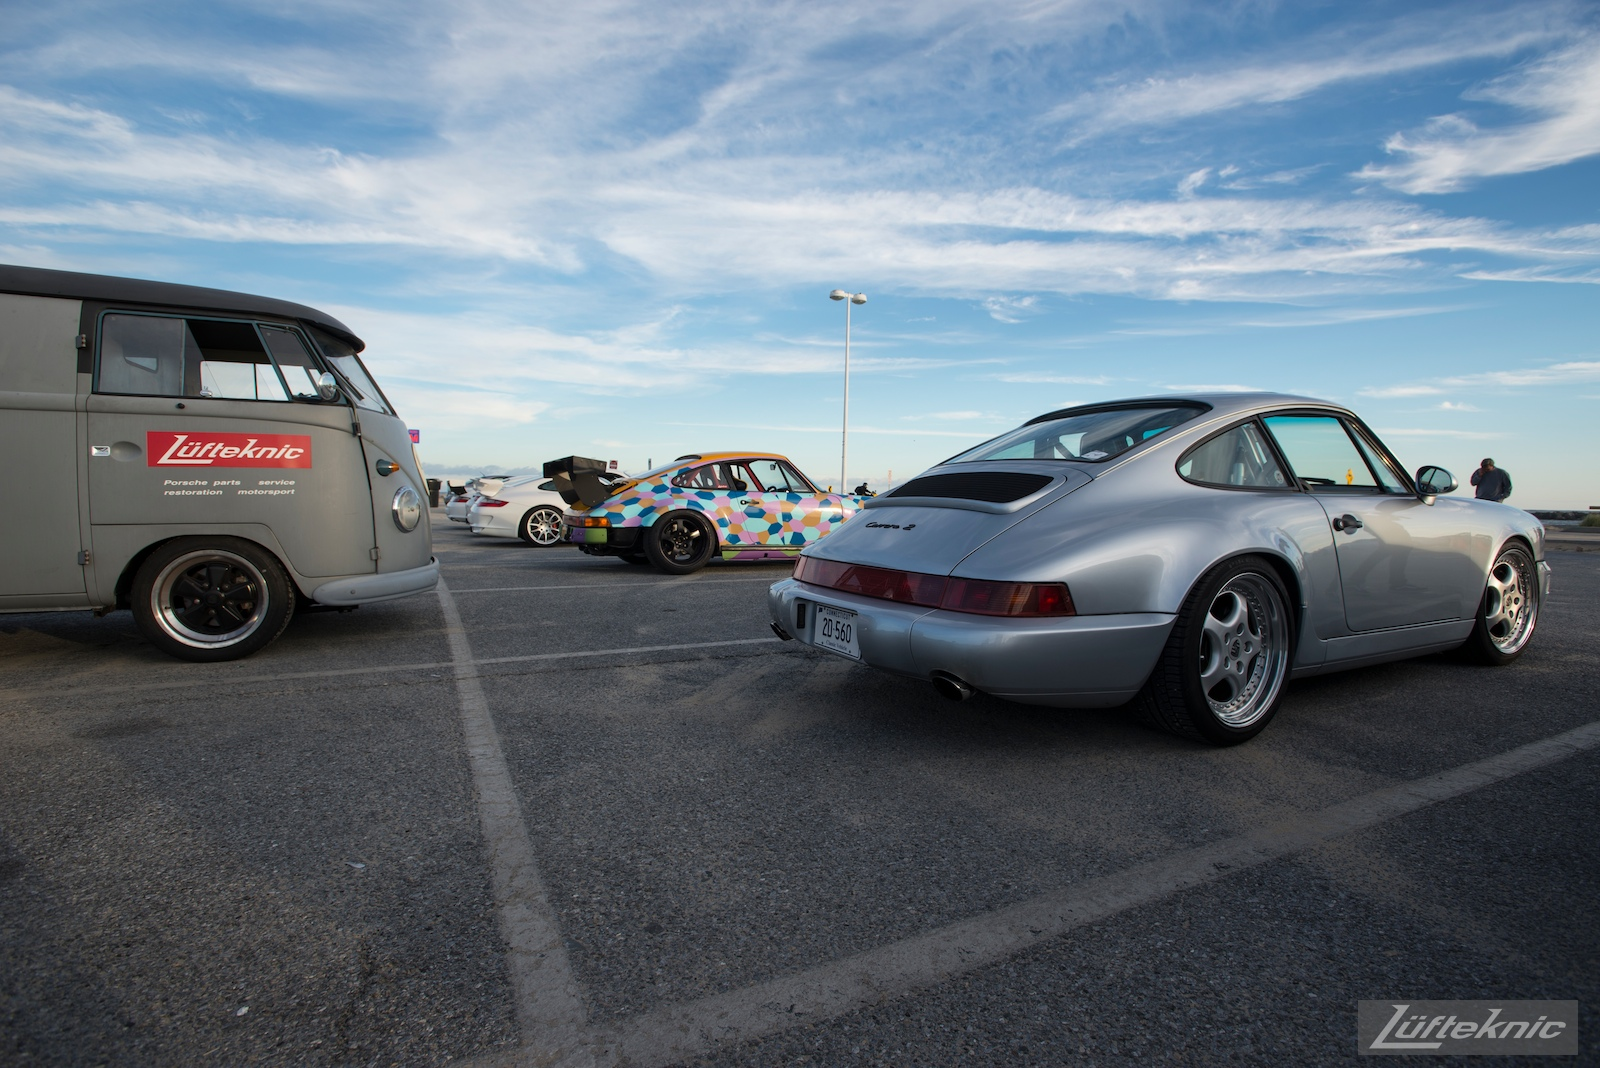 A Porsche 964 visits the Lüfteknic #projectstuka Porsche 930 Turbo